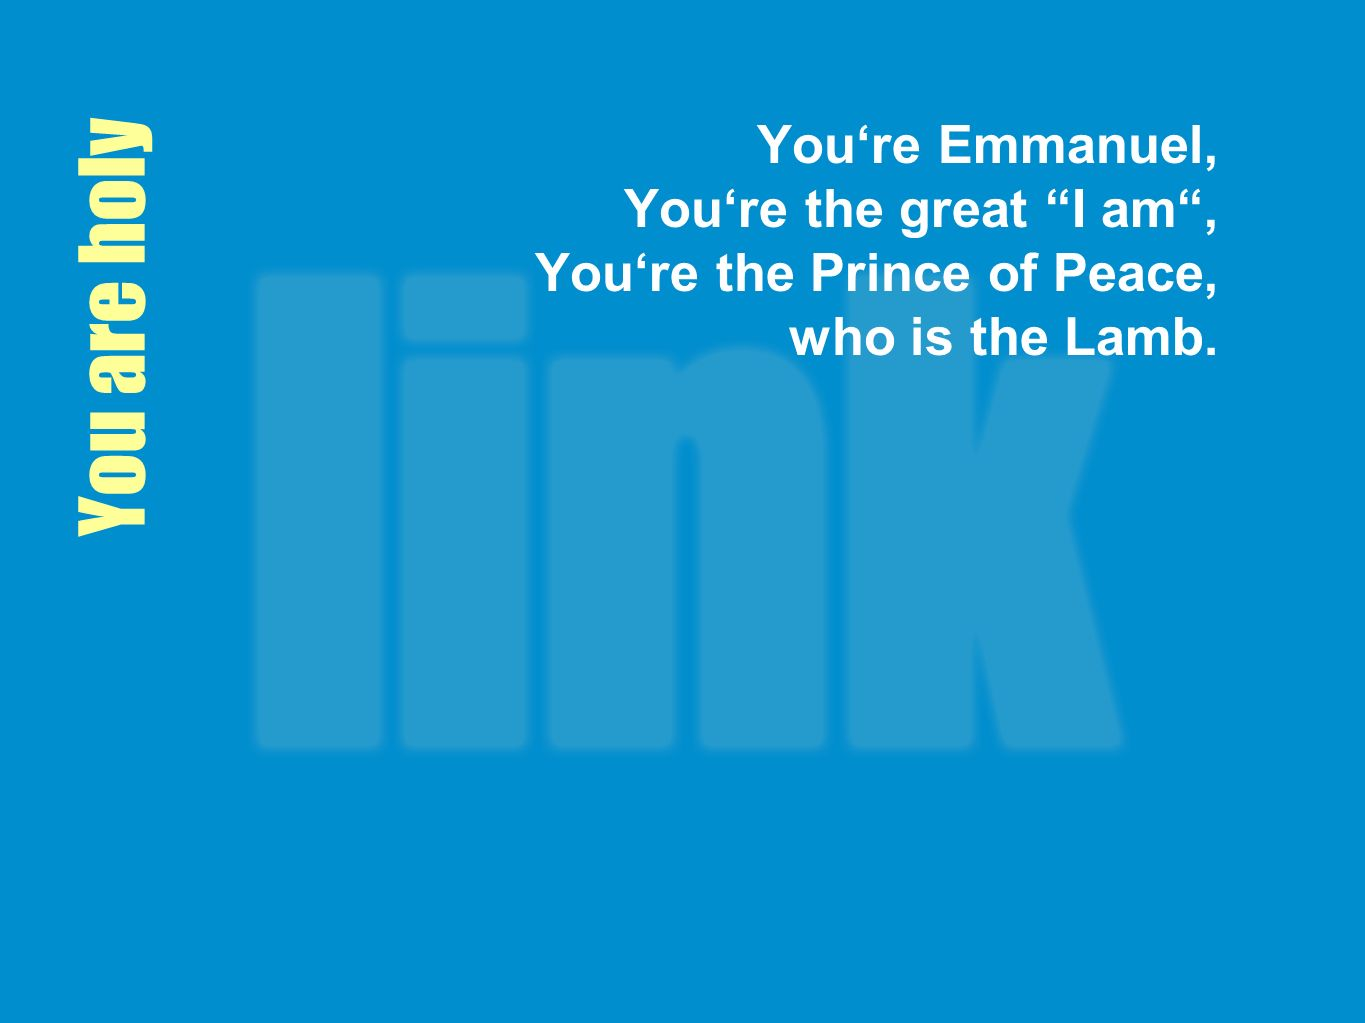 You are holy Youre Emmanuel, Youre the great I am, Youre the Prince of Peace, who is the Lamb.